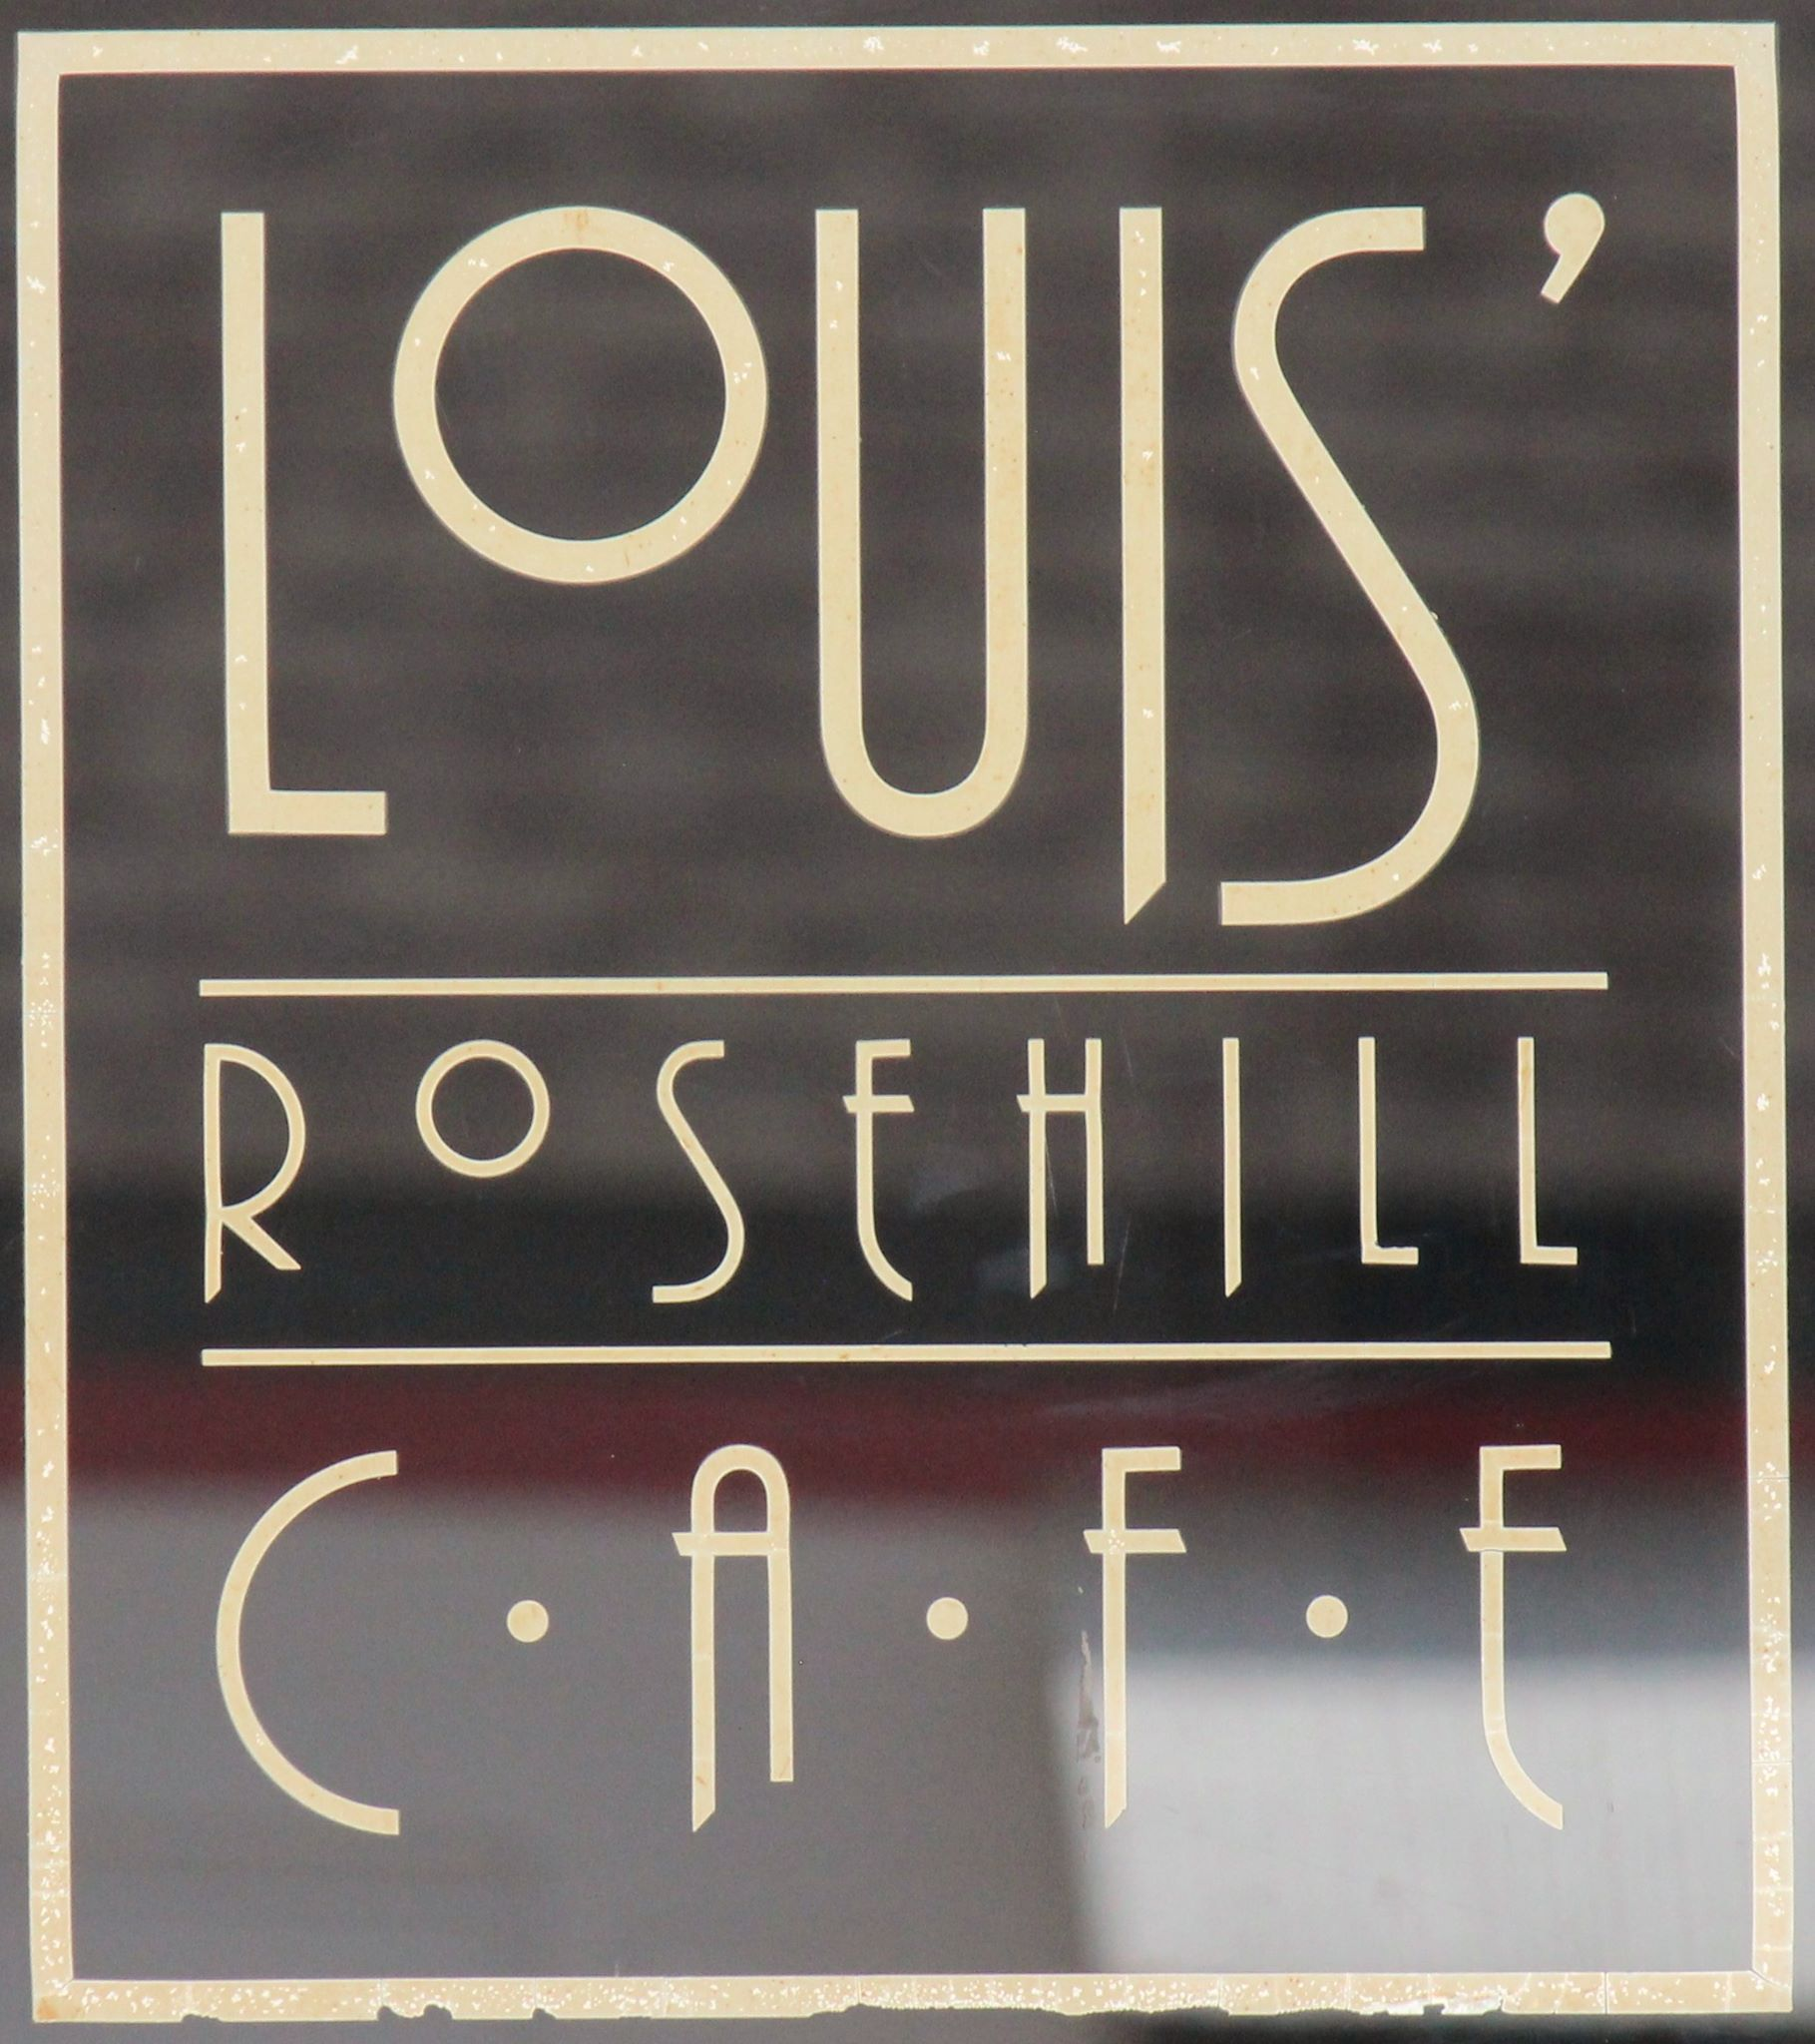 Louis Rose Hill Cafe 107 S Rose Hill Rd Rose Hill, Kansas 67133